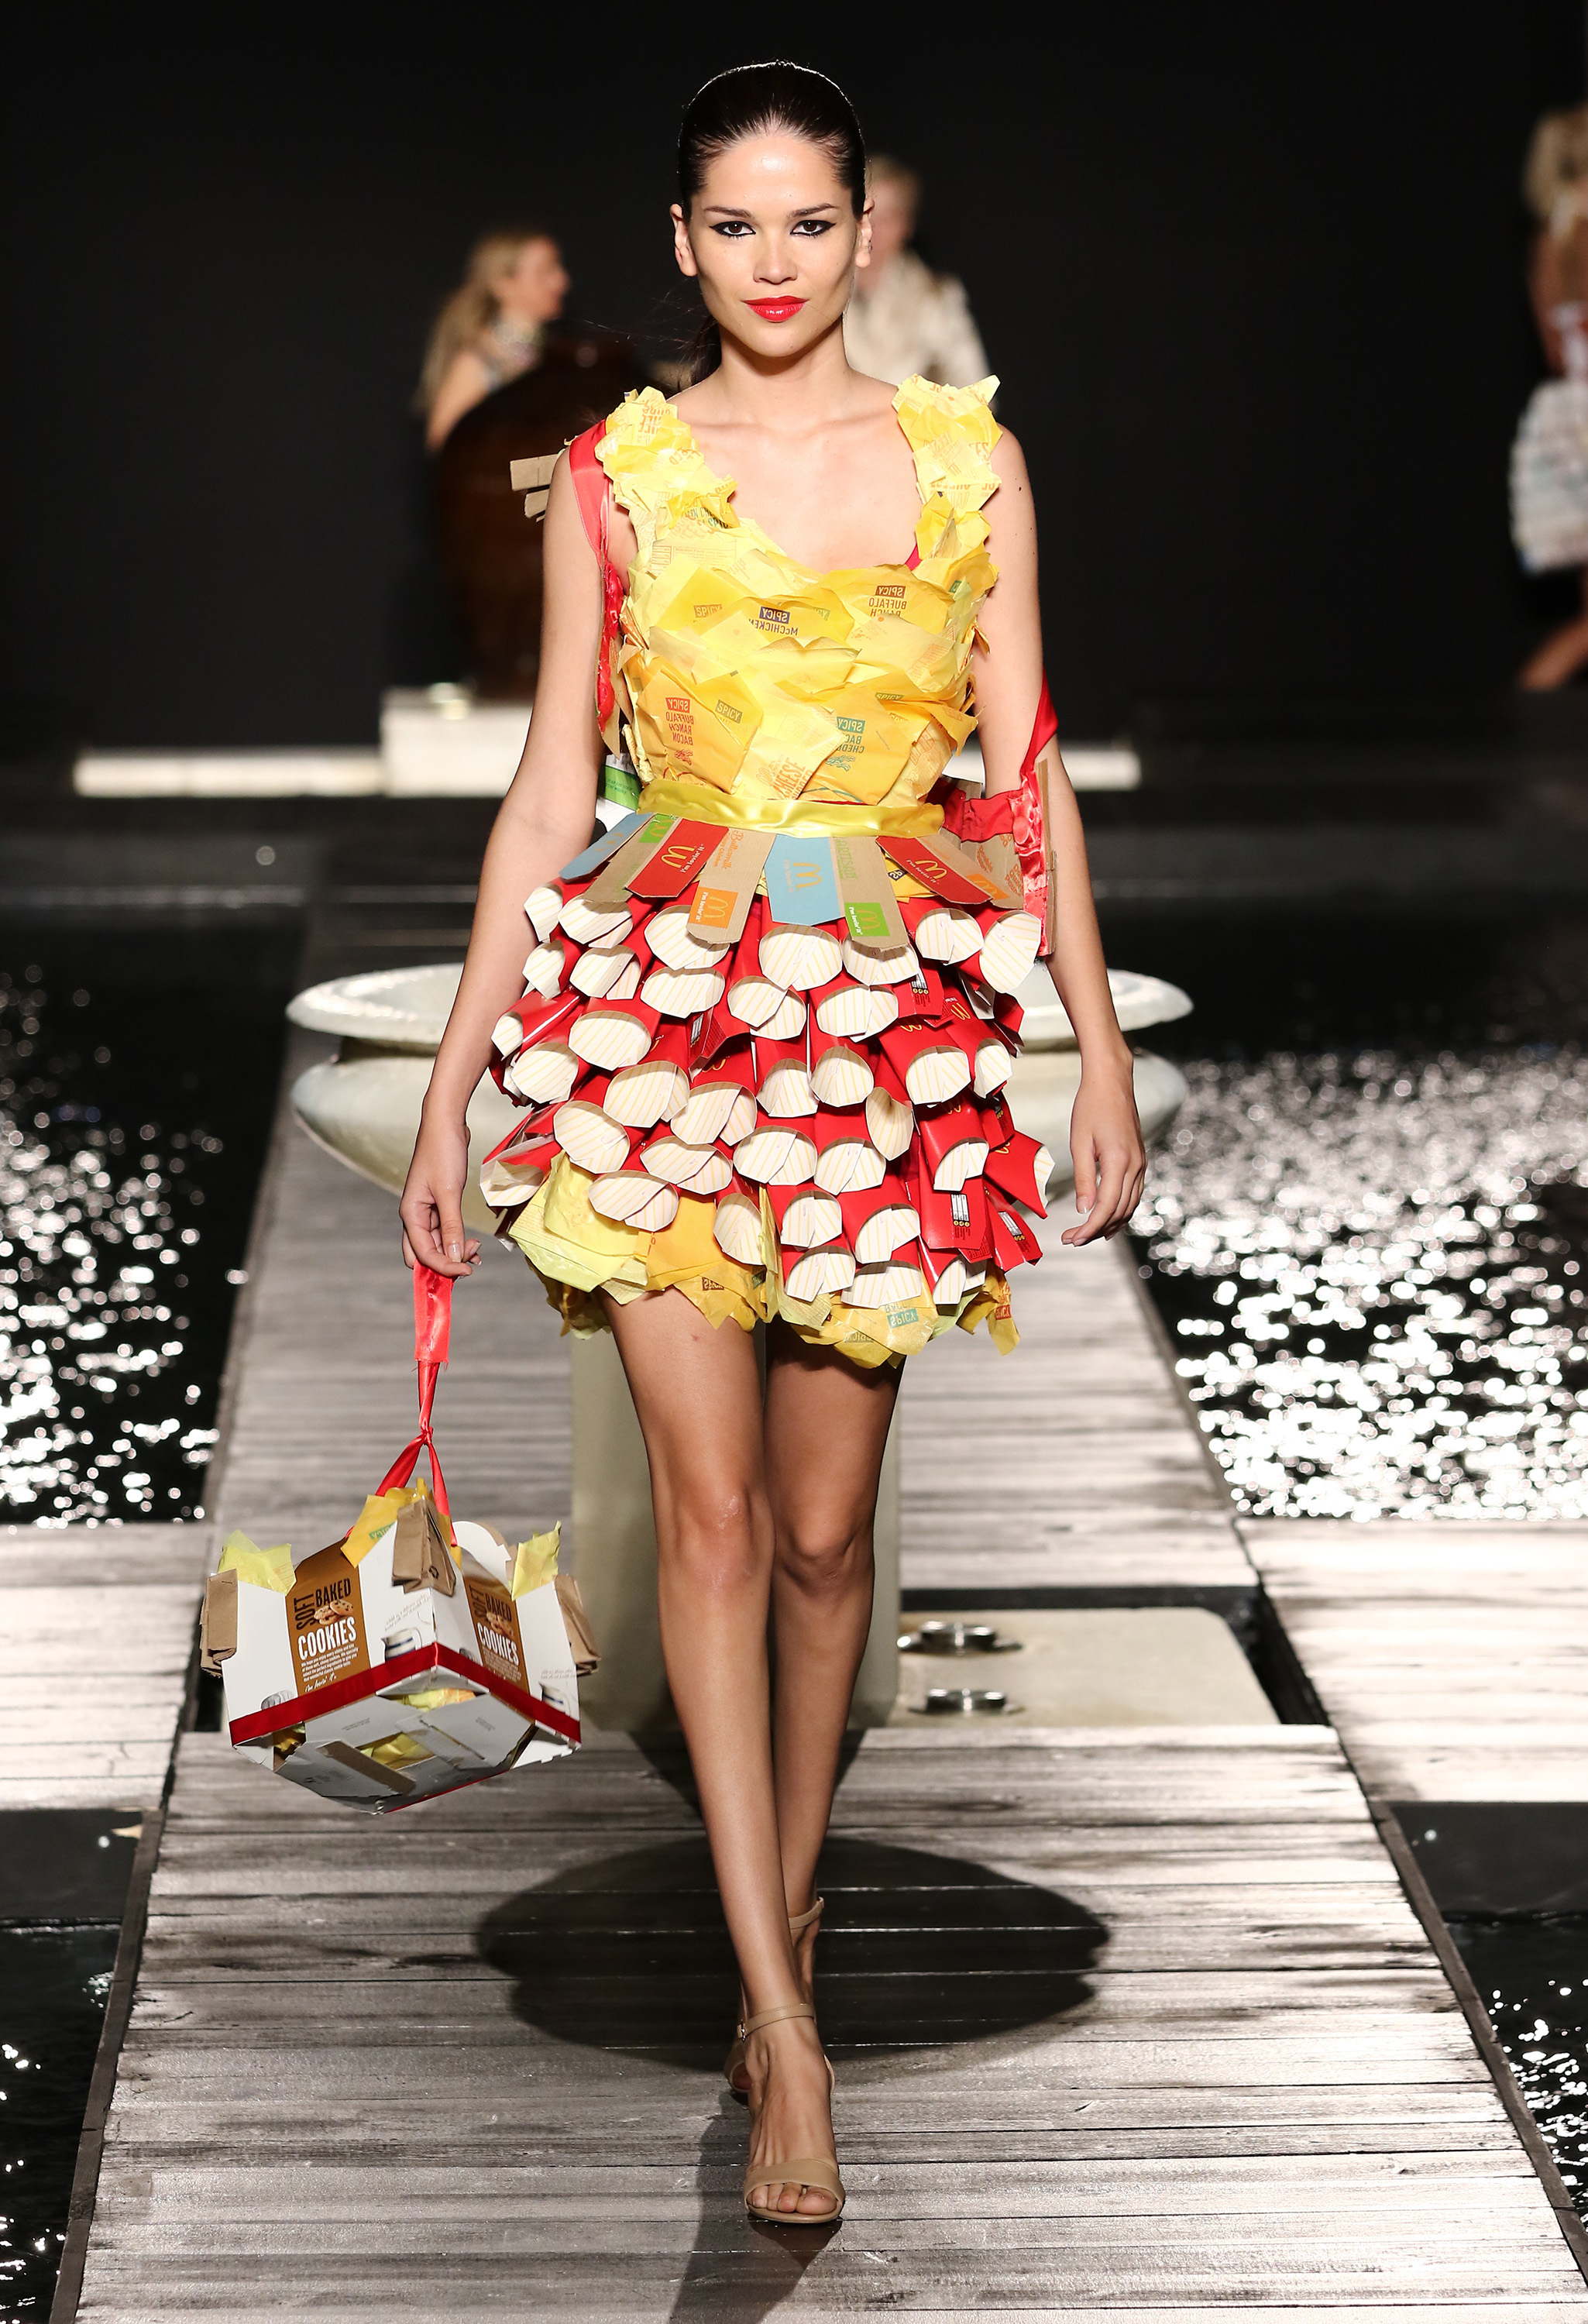 McDonalds Debuts a Fashion Line Made Out Of Its Trash